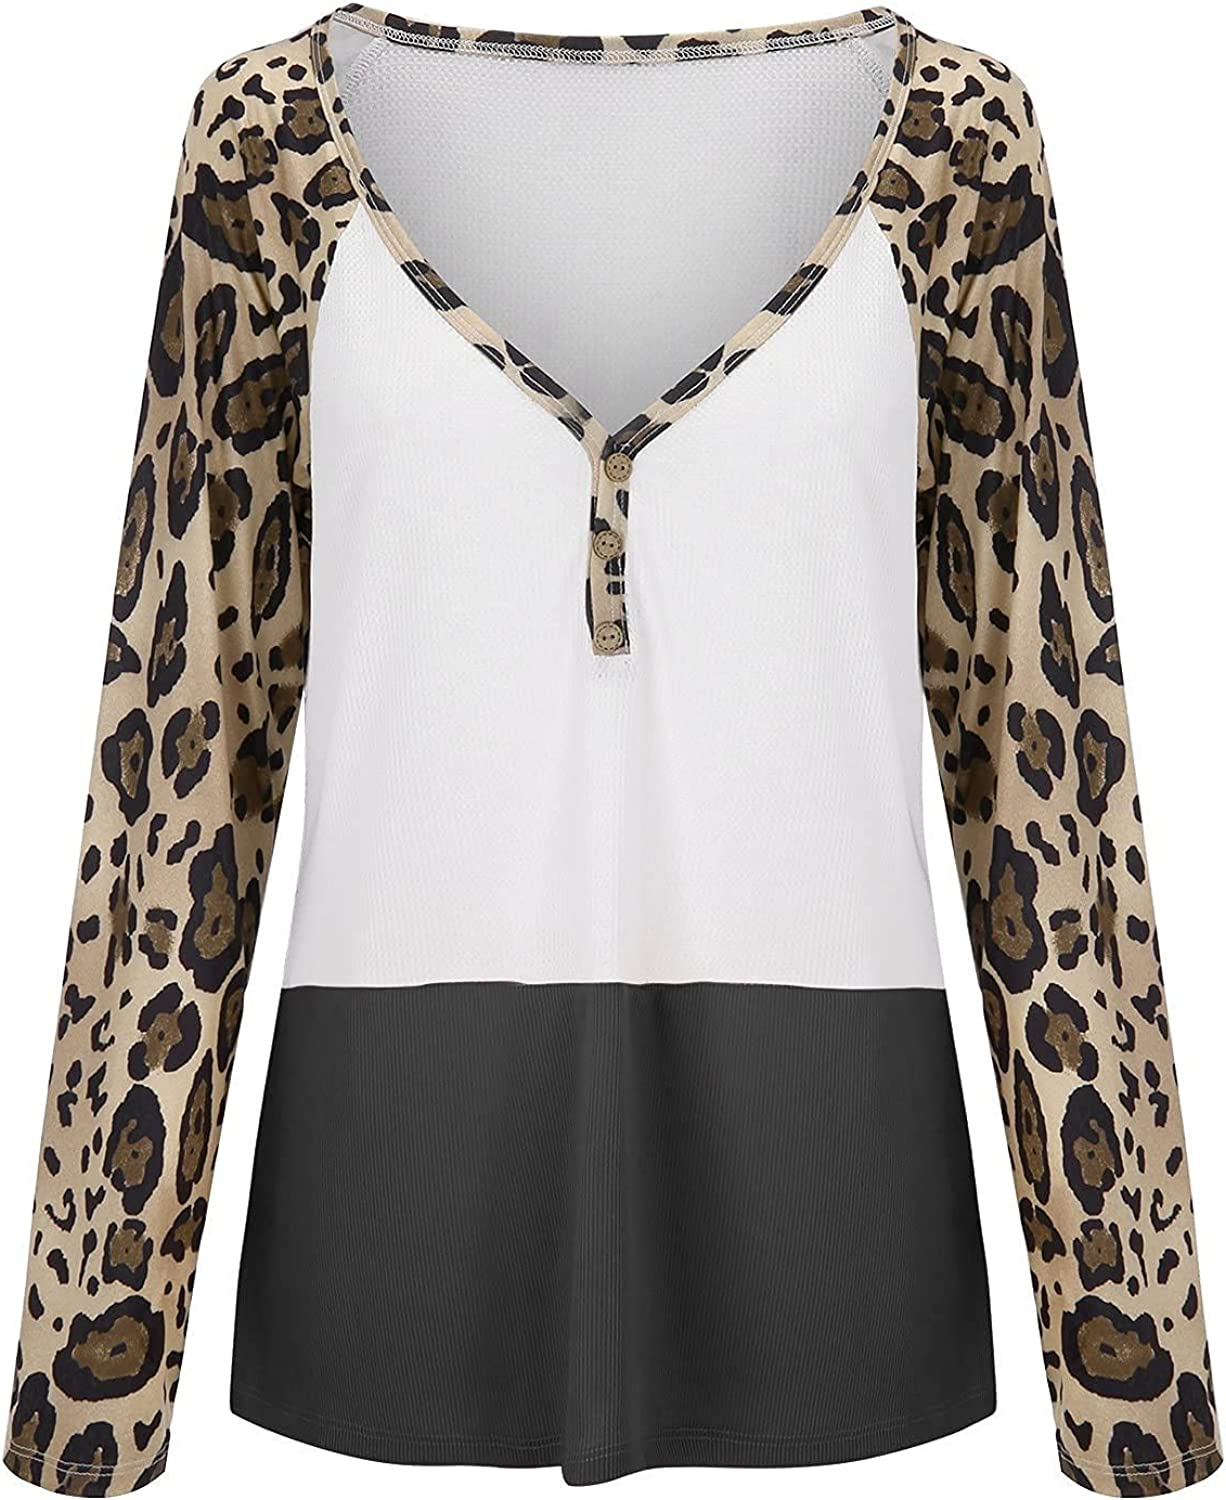 TIMIFIS Sexy V Neck Tunic Tops for Women Hollow Long Sleeve T-Shirts Off Shoulder Blouse Fashion Leopard Sweatshirt